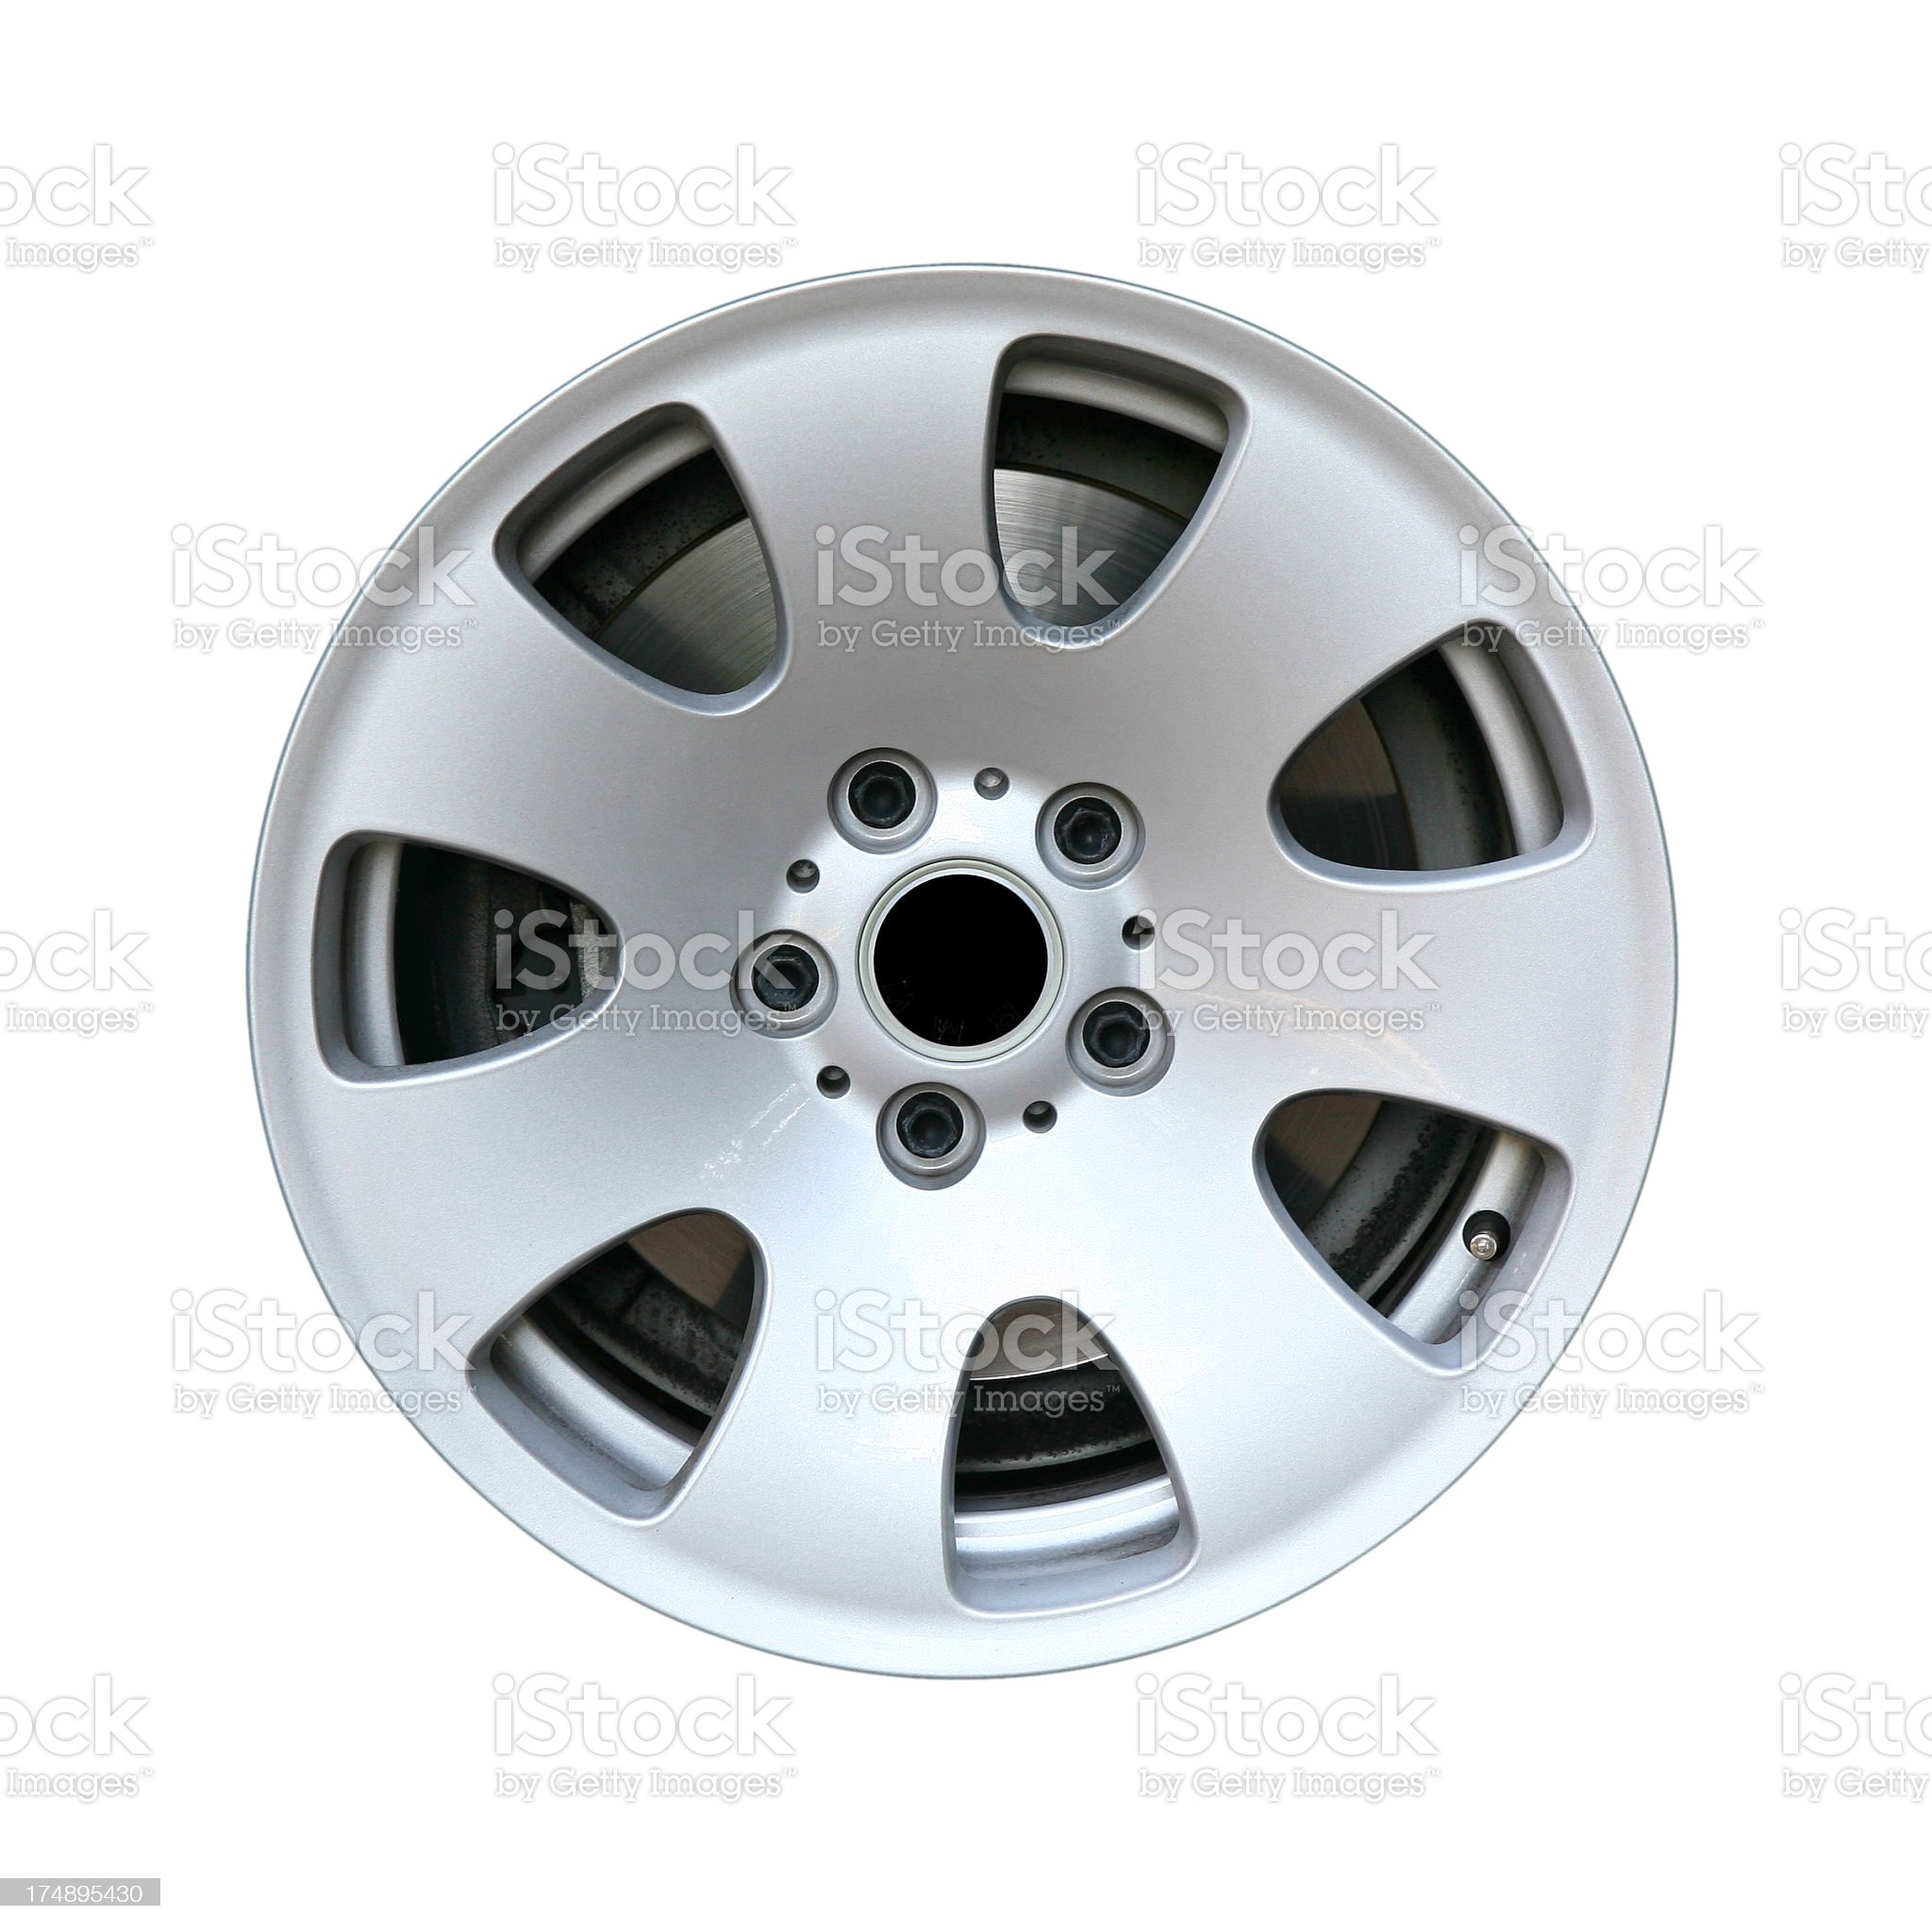 Side view of an alloy car wheel, isolated on white royalty-free stock photo